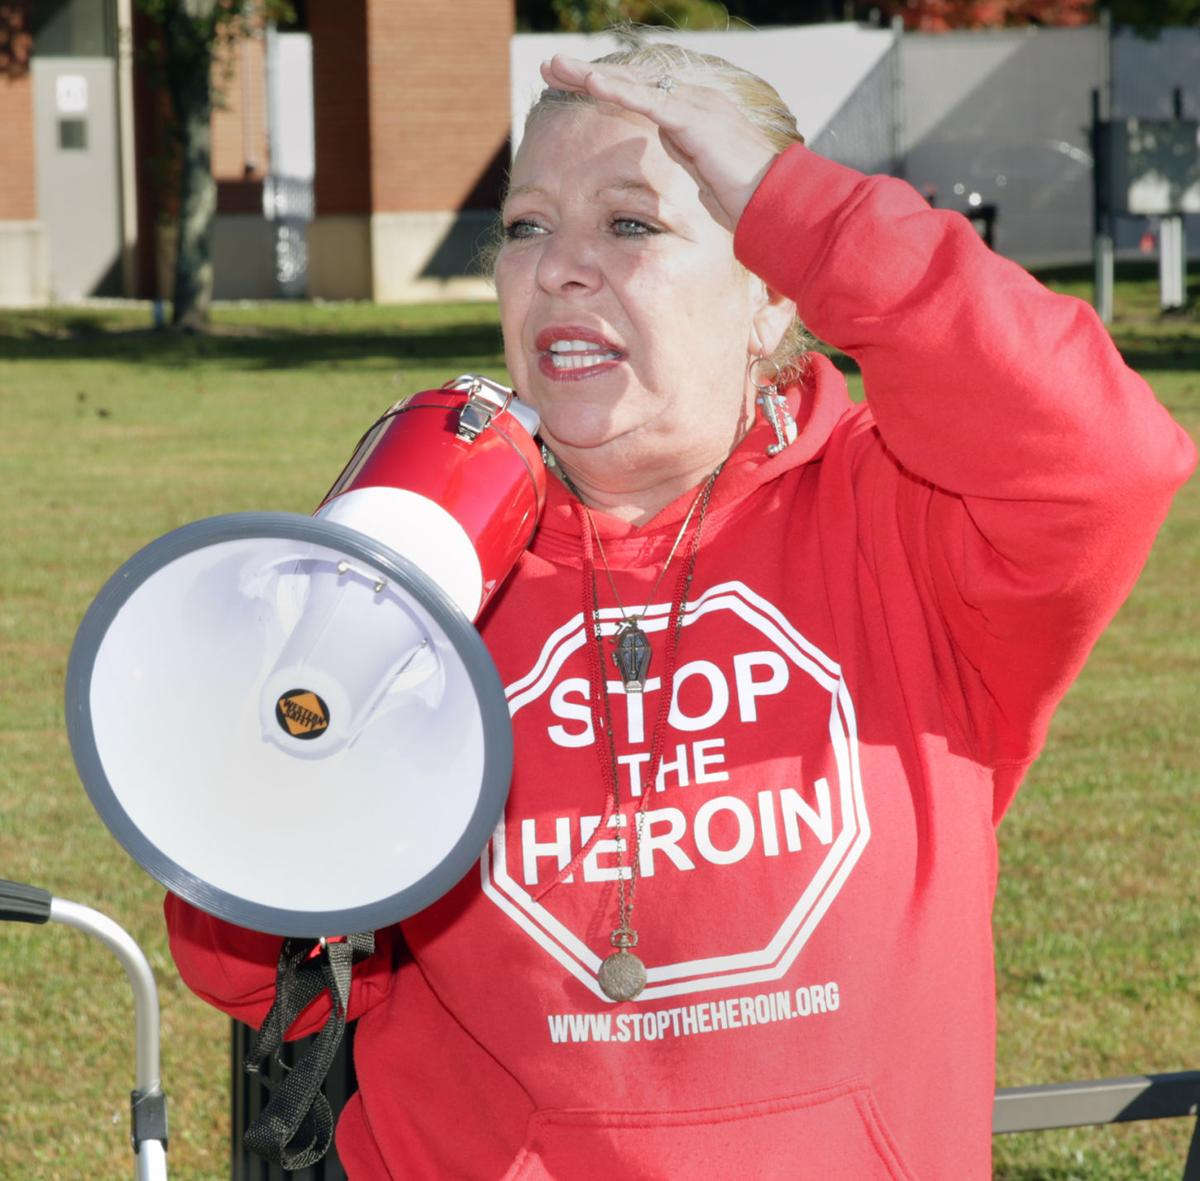 Heroin Protest at Superior Court